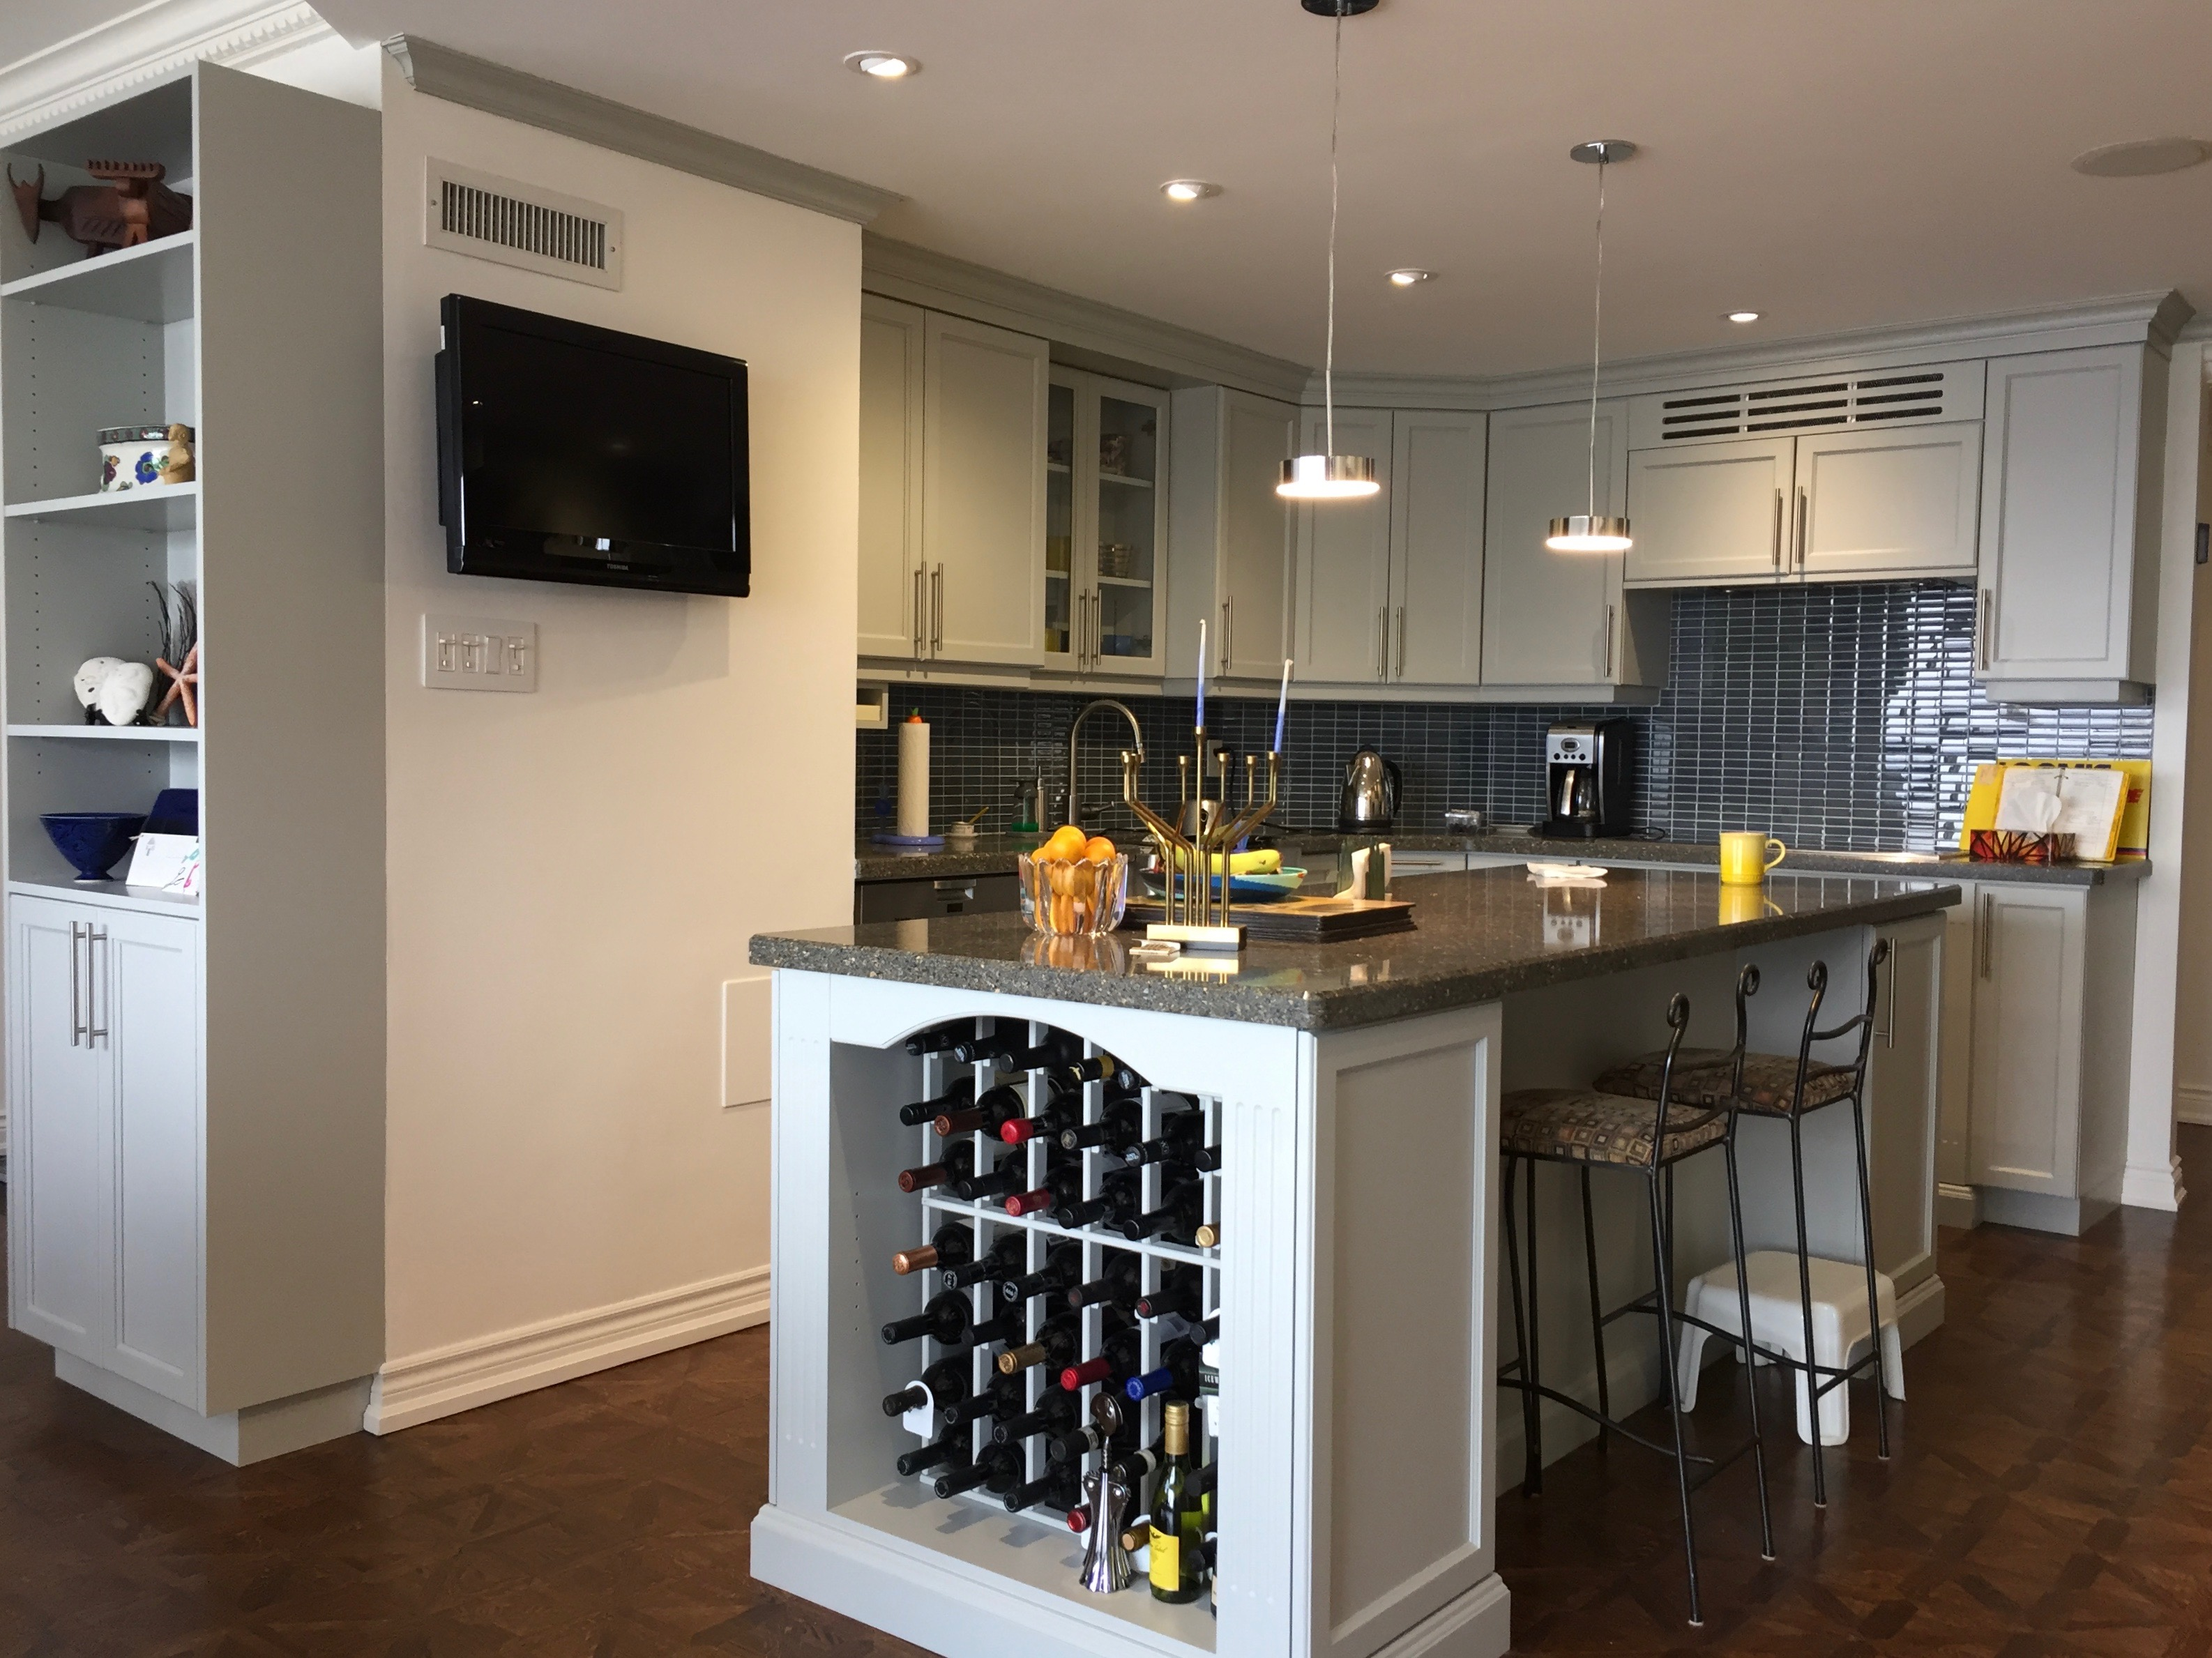 Condo Cabinets in Stonington Grey